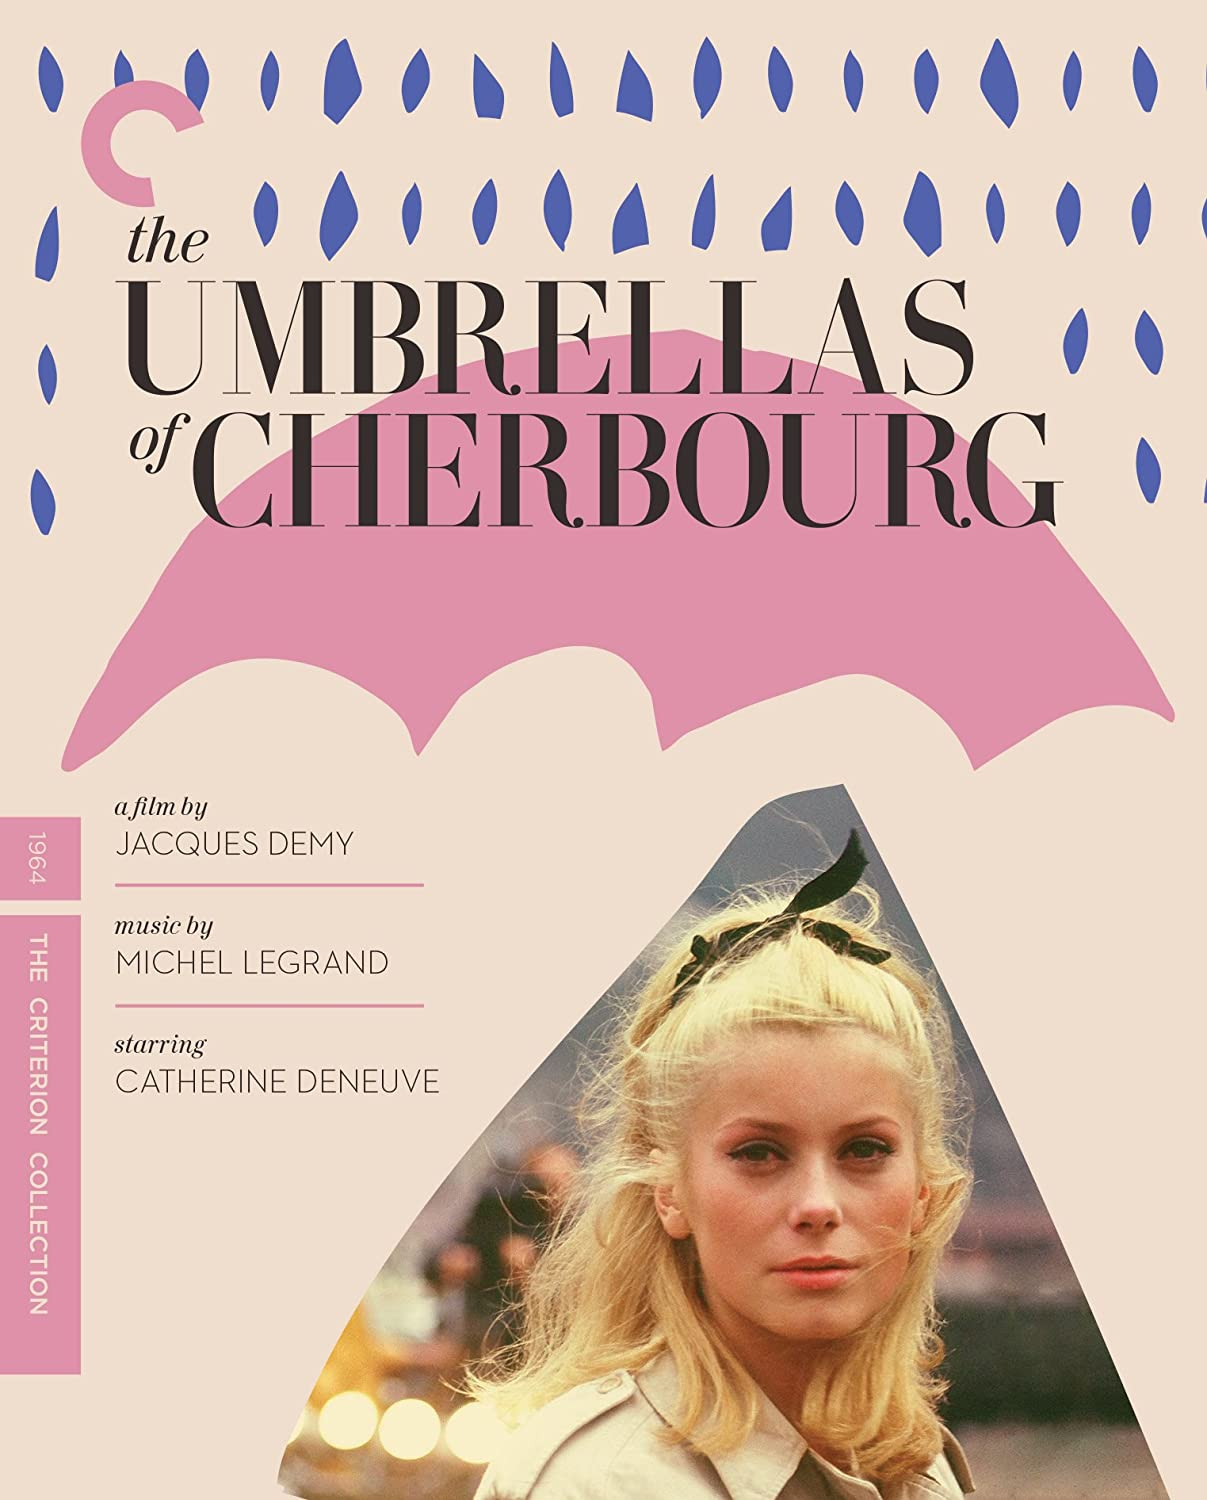 Image result for the umbrellas of cherbourg poster criterion